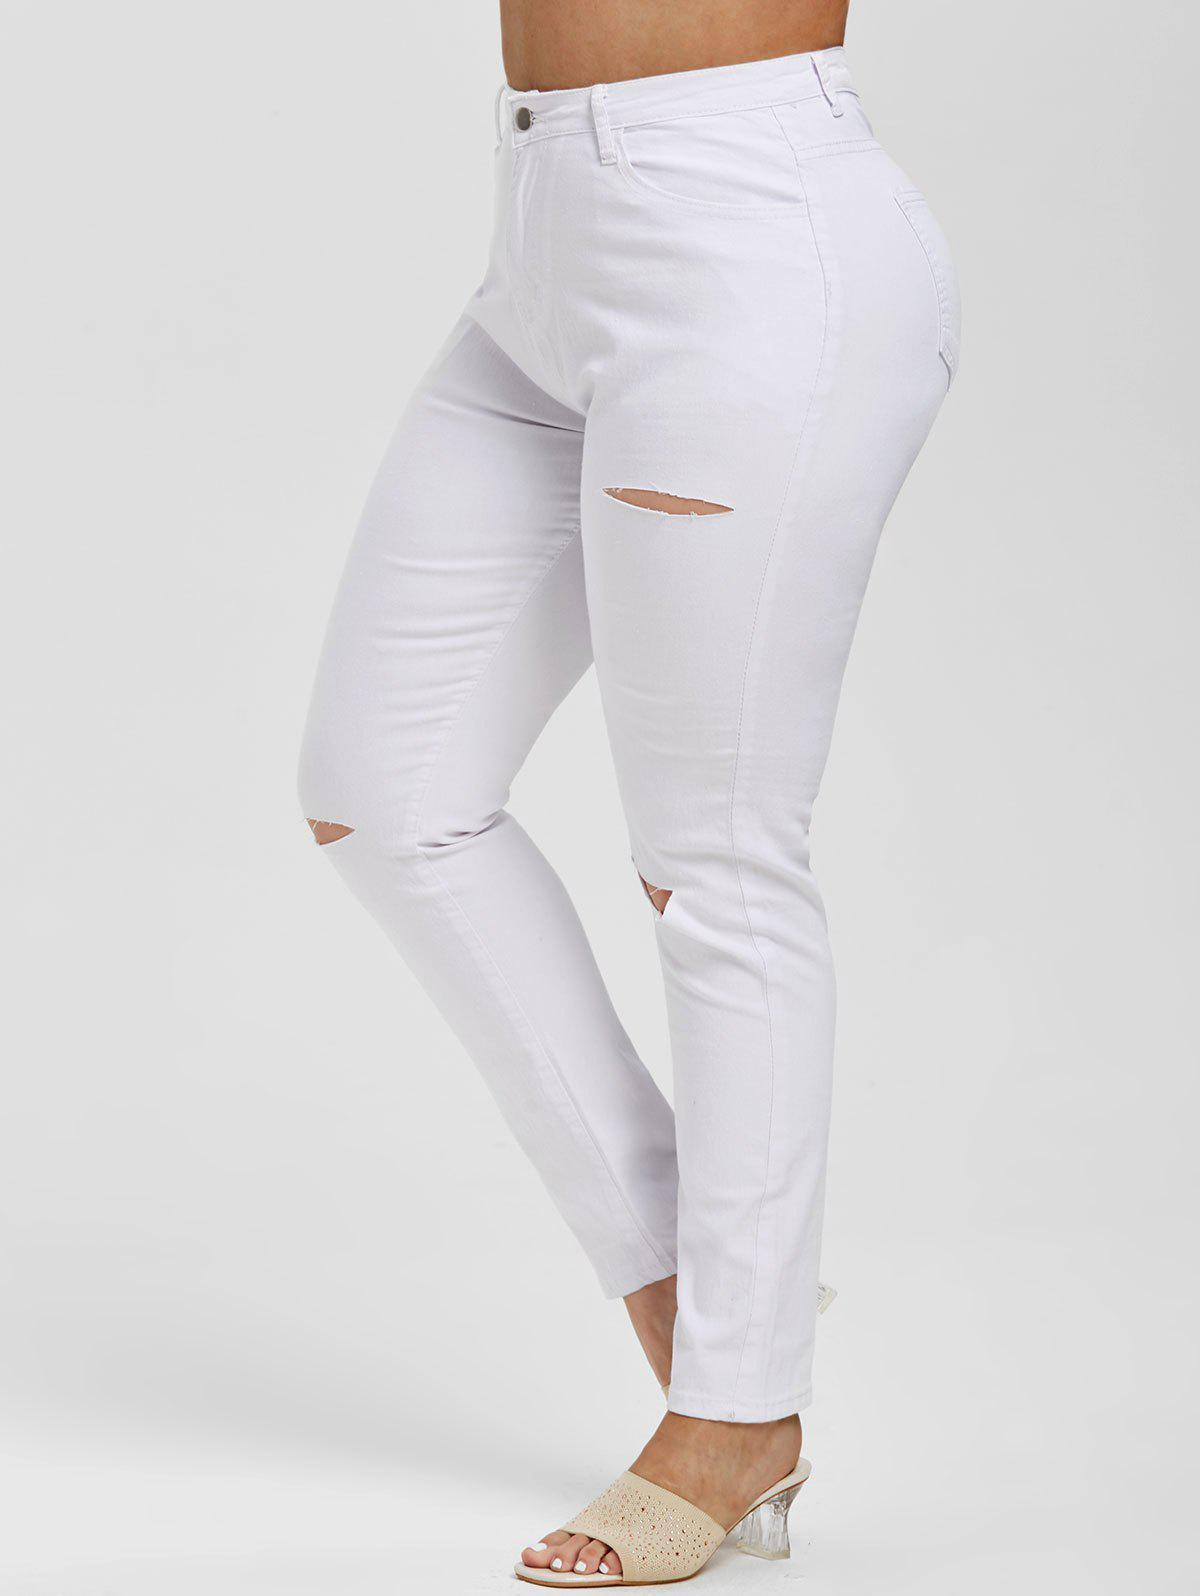 Distressed Cutout High Waisted Plus Size Skinny Jeans - WHITE 5XL